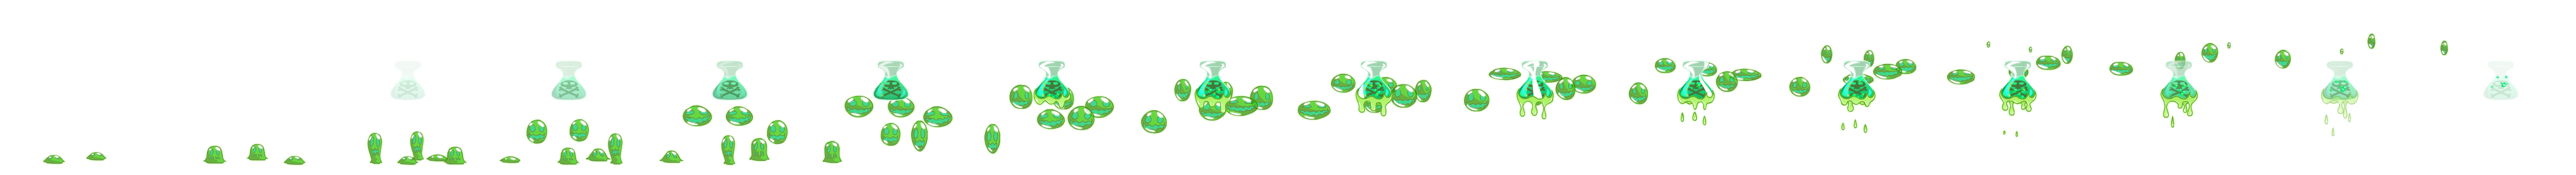 https://images.neopets.com/dome/statuses/poisoned-16-390kb.png